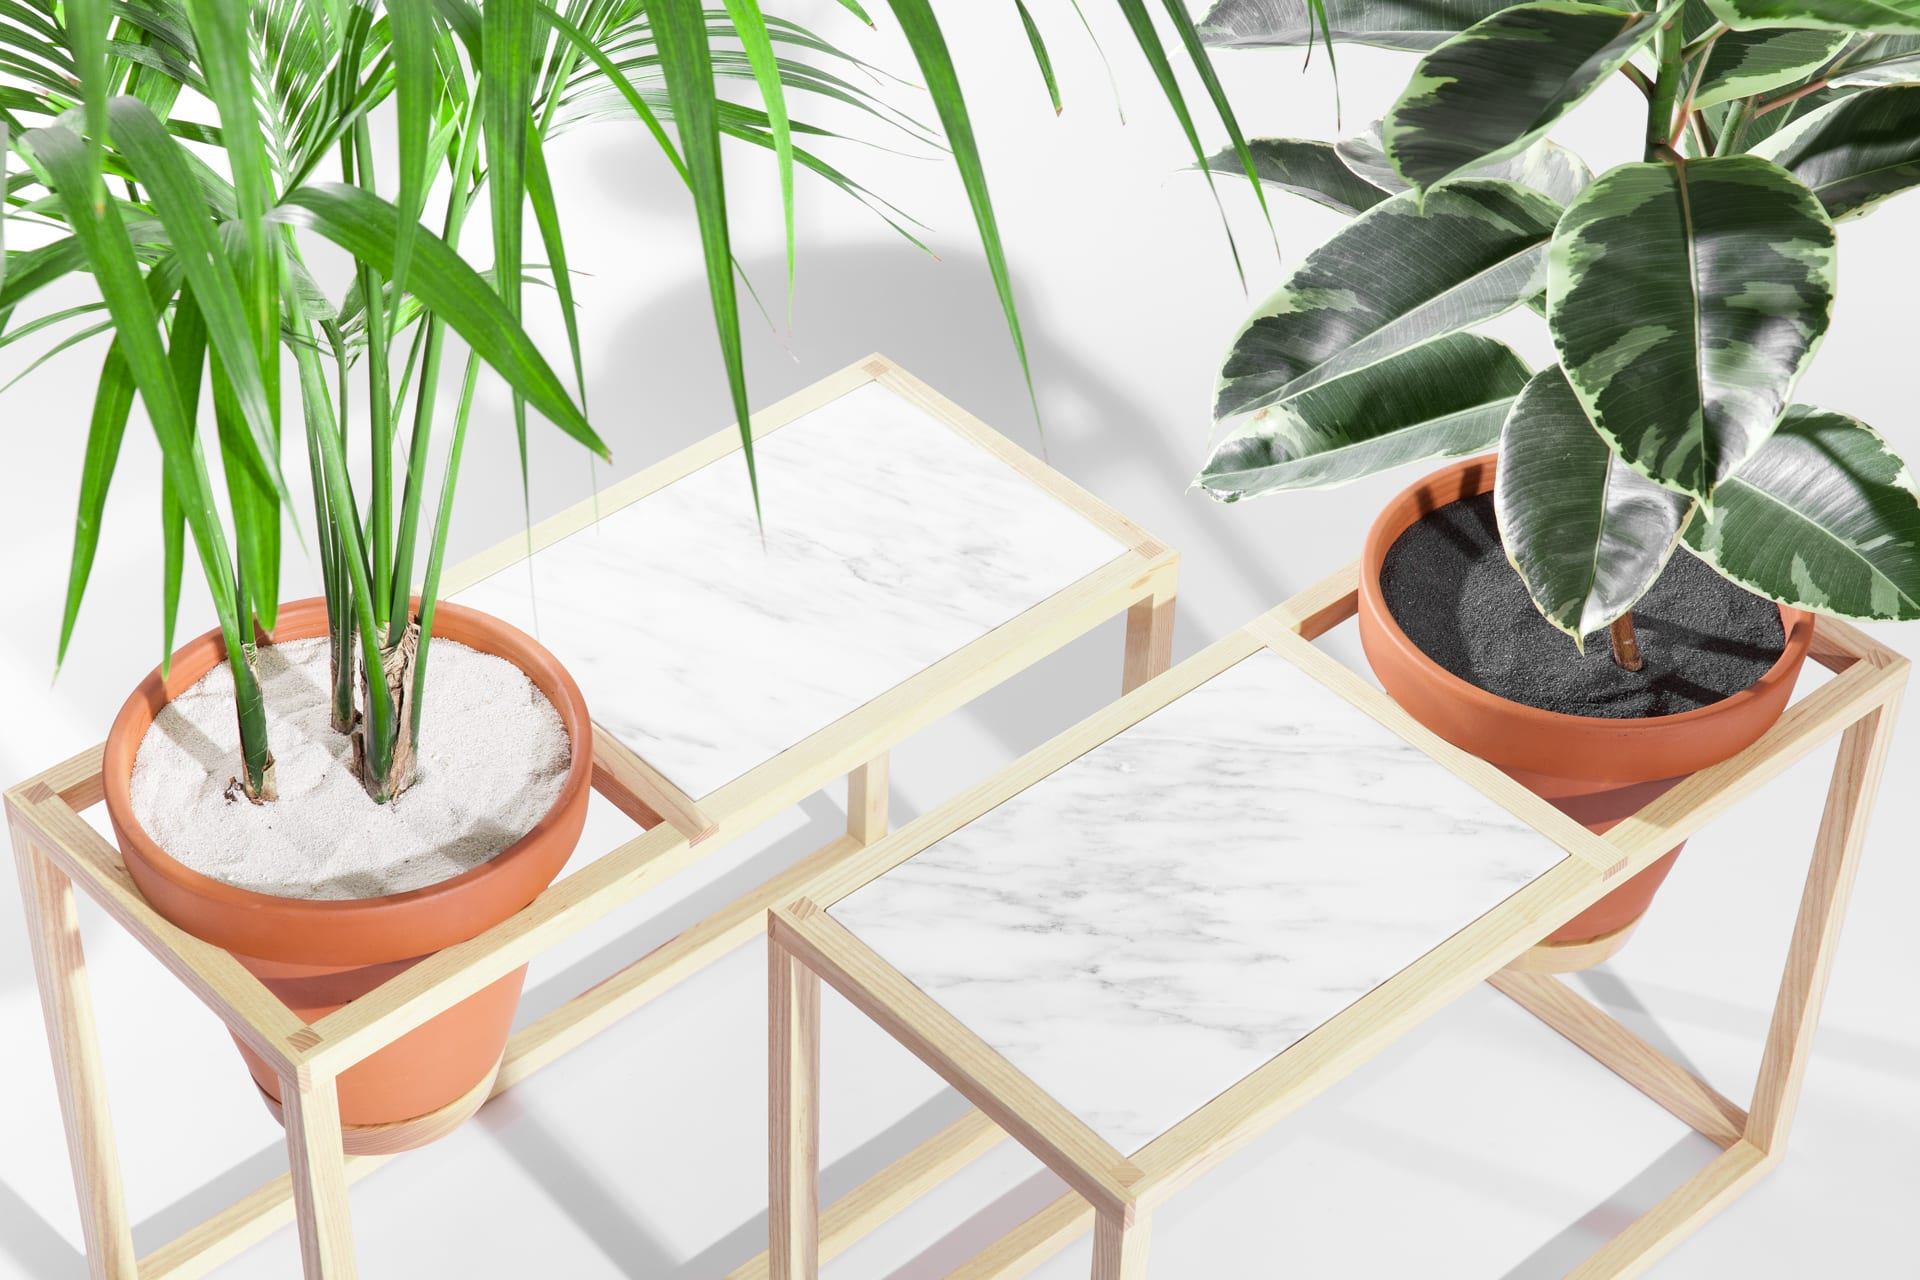 Vases & Vessels by Trey Jones Studio seen at Broadcast Coffee, Seattle - The Frame Planter Collection